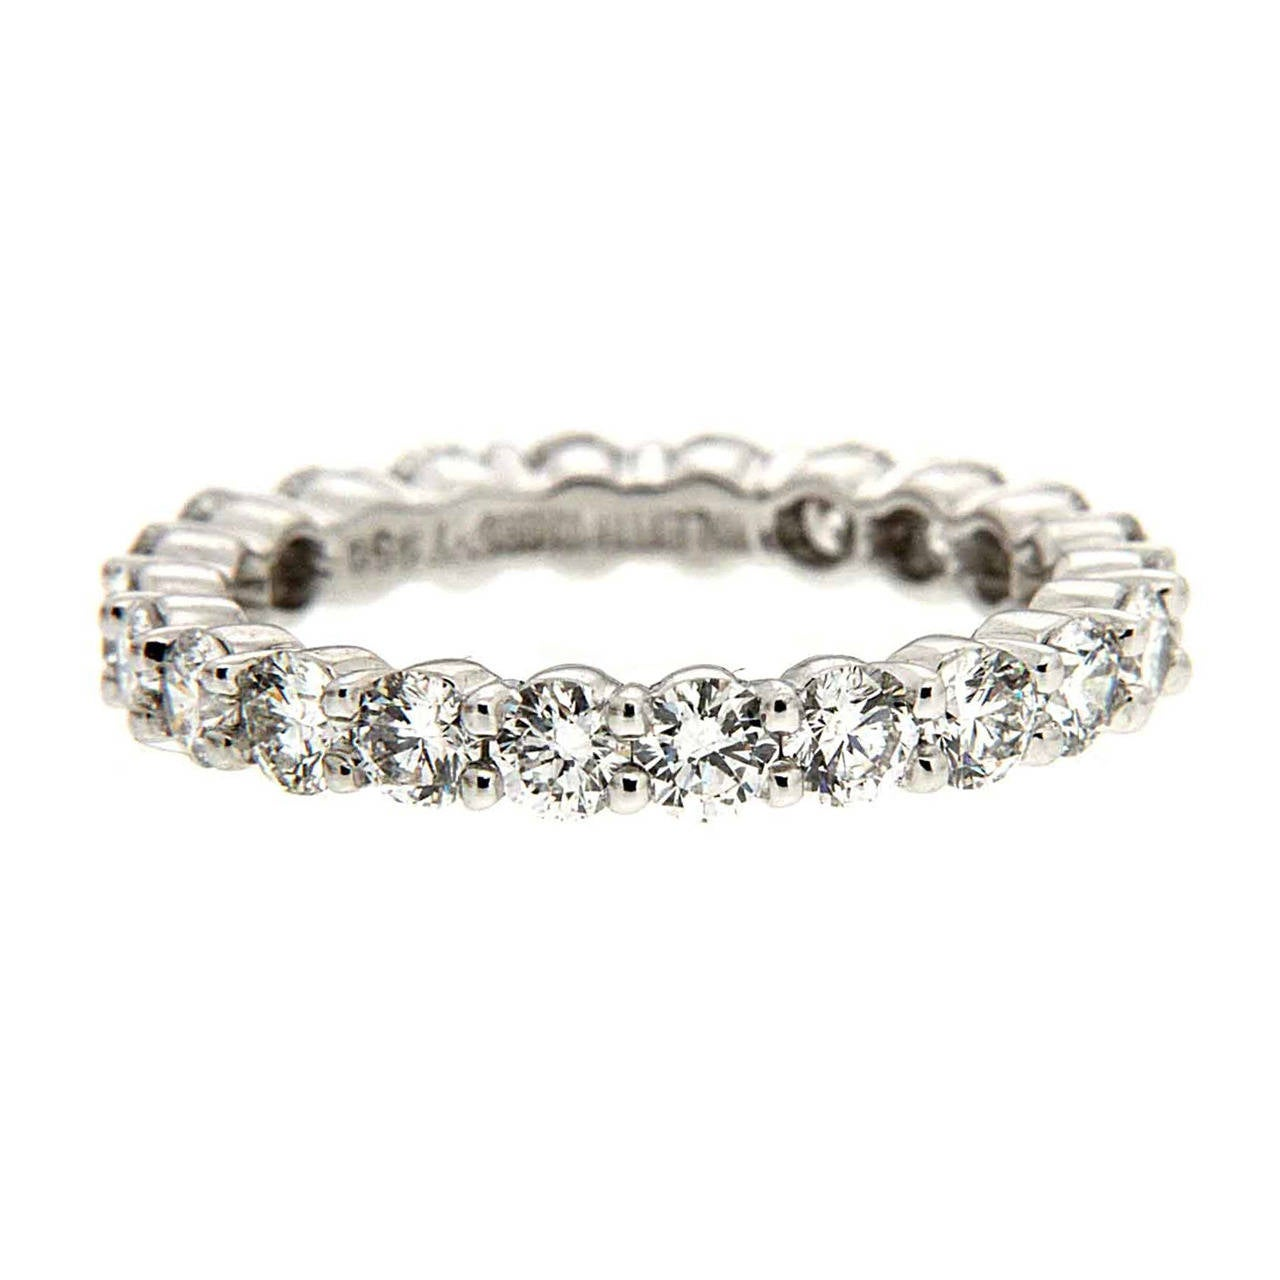 Valentin Magro 2.20 Carat Diamond Platinum Eternity Band Ring